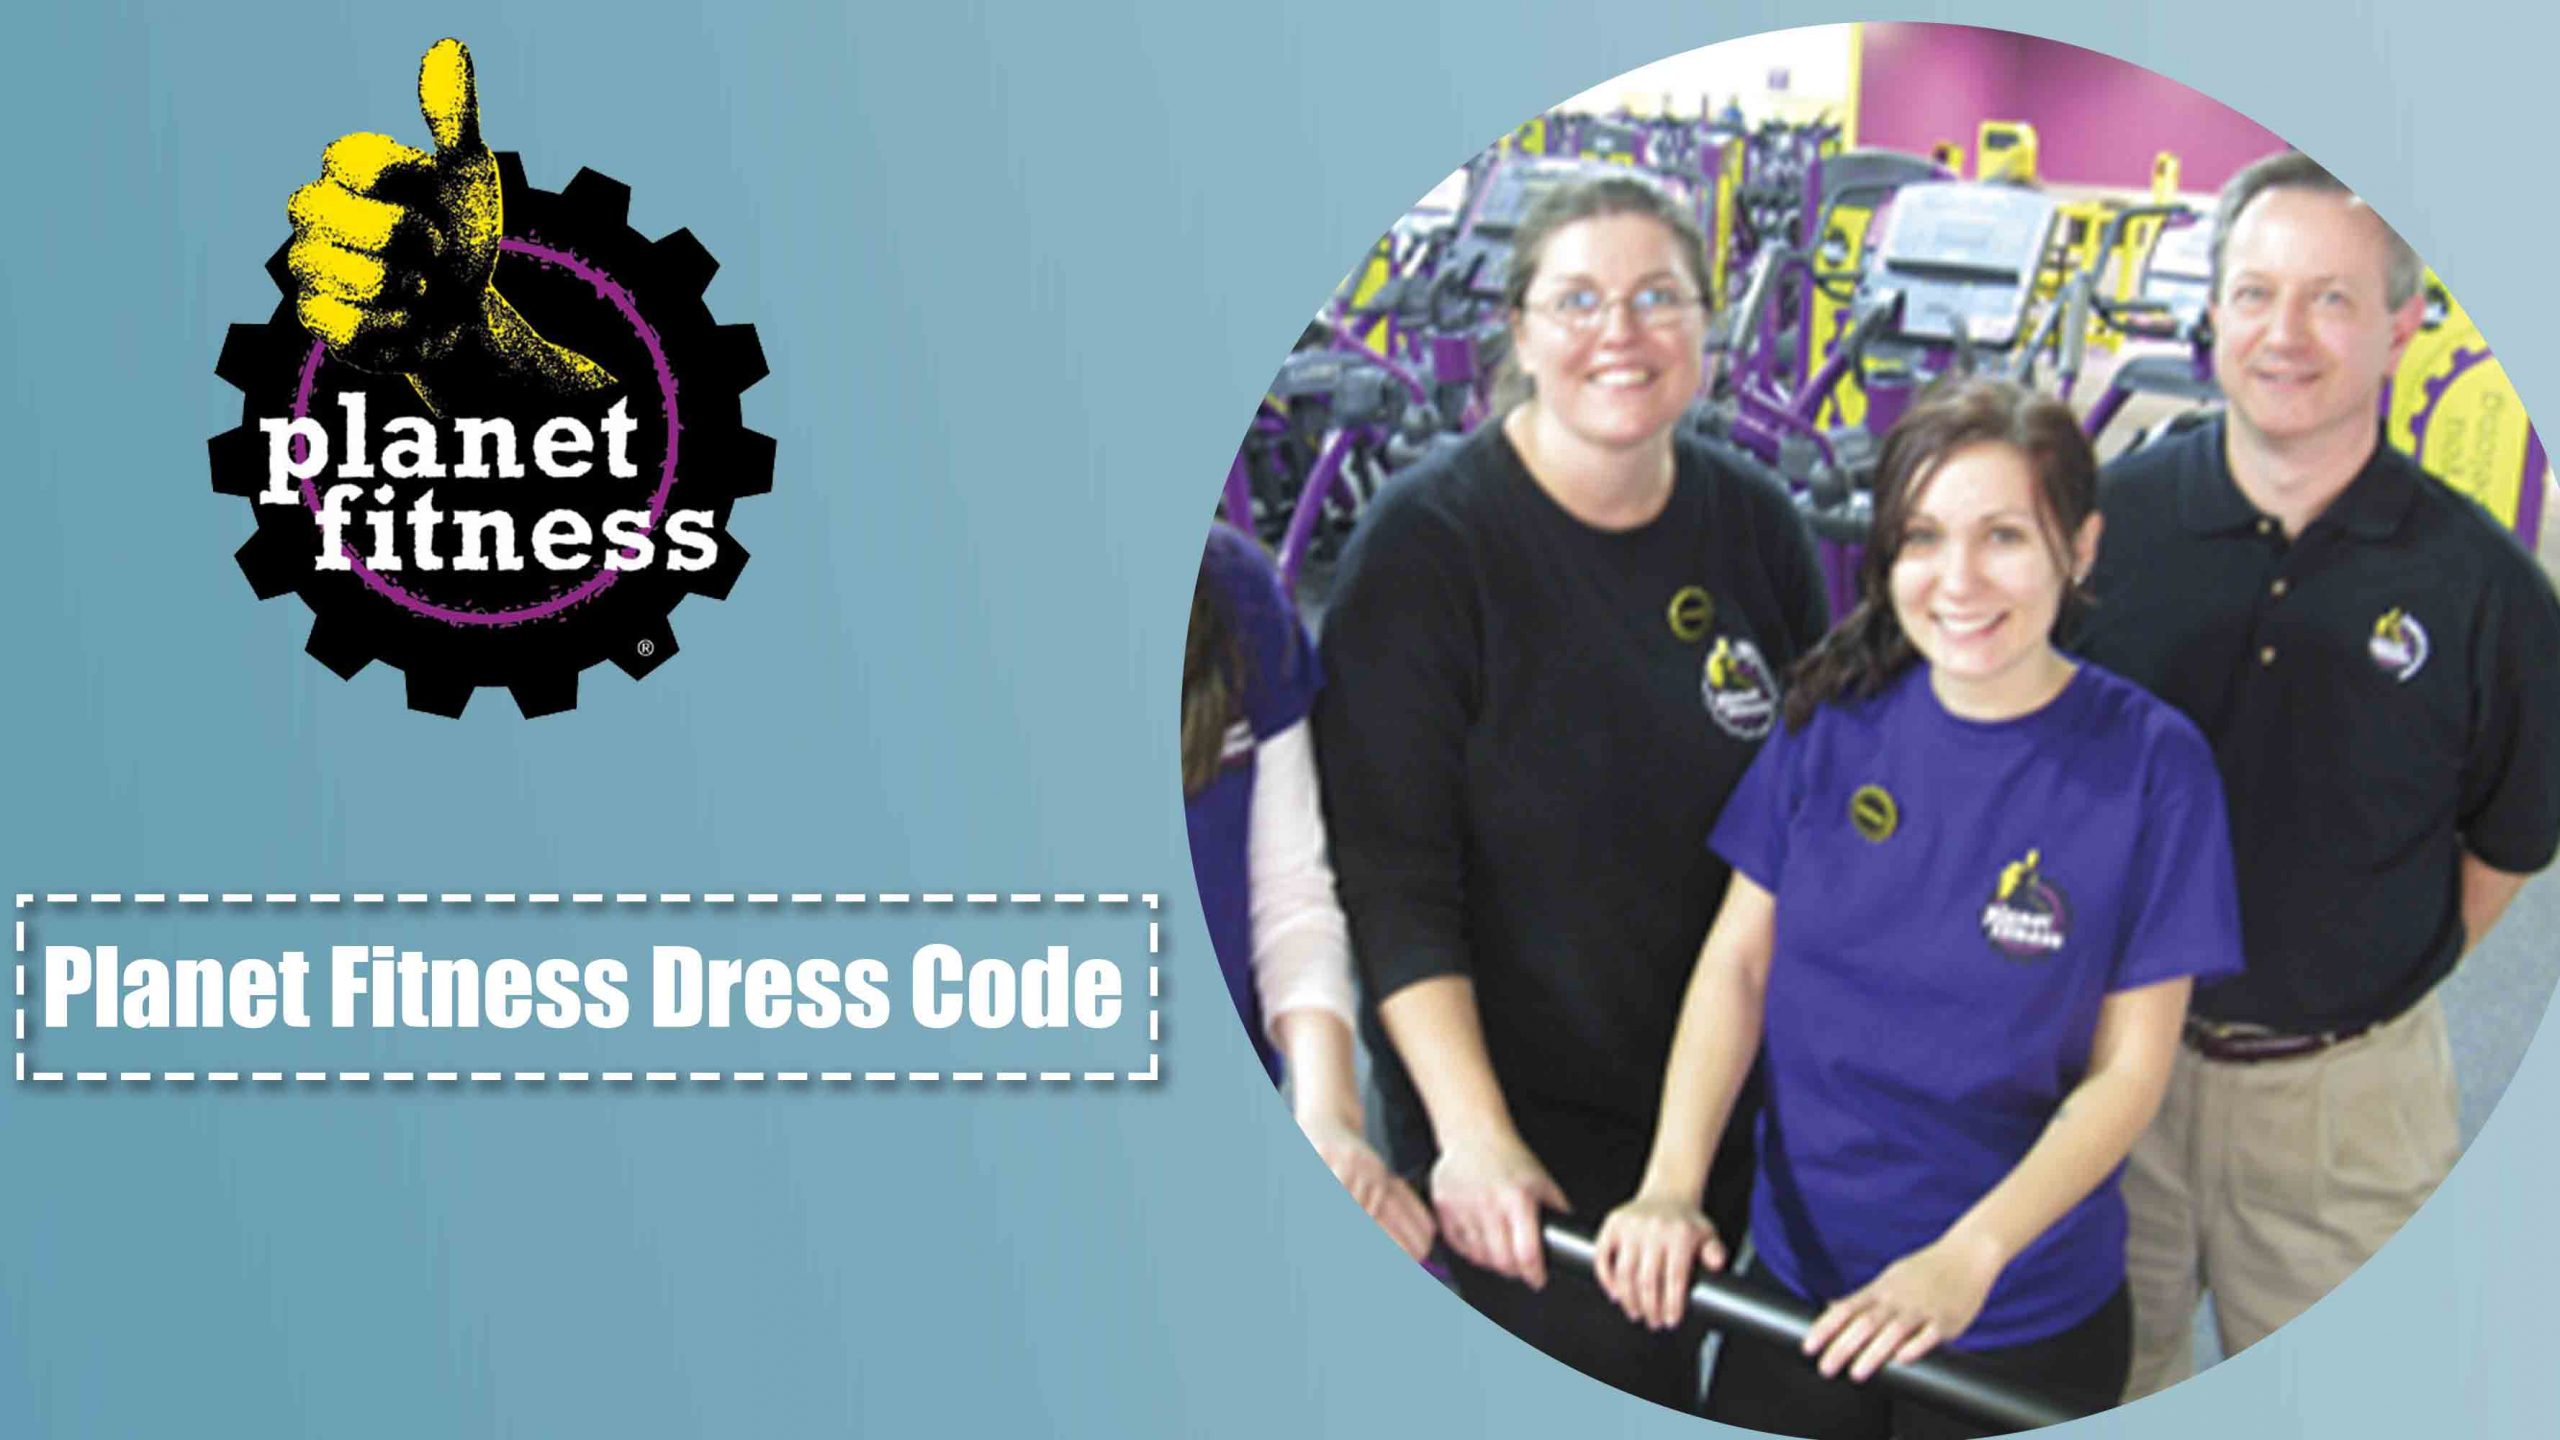 Dress Code of Planet Fitness